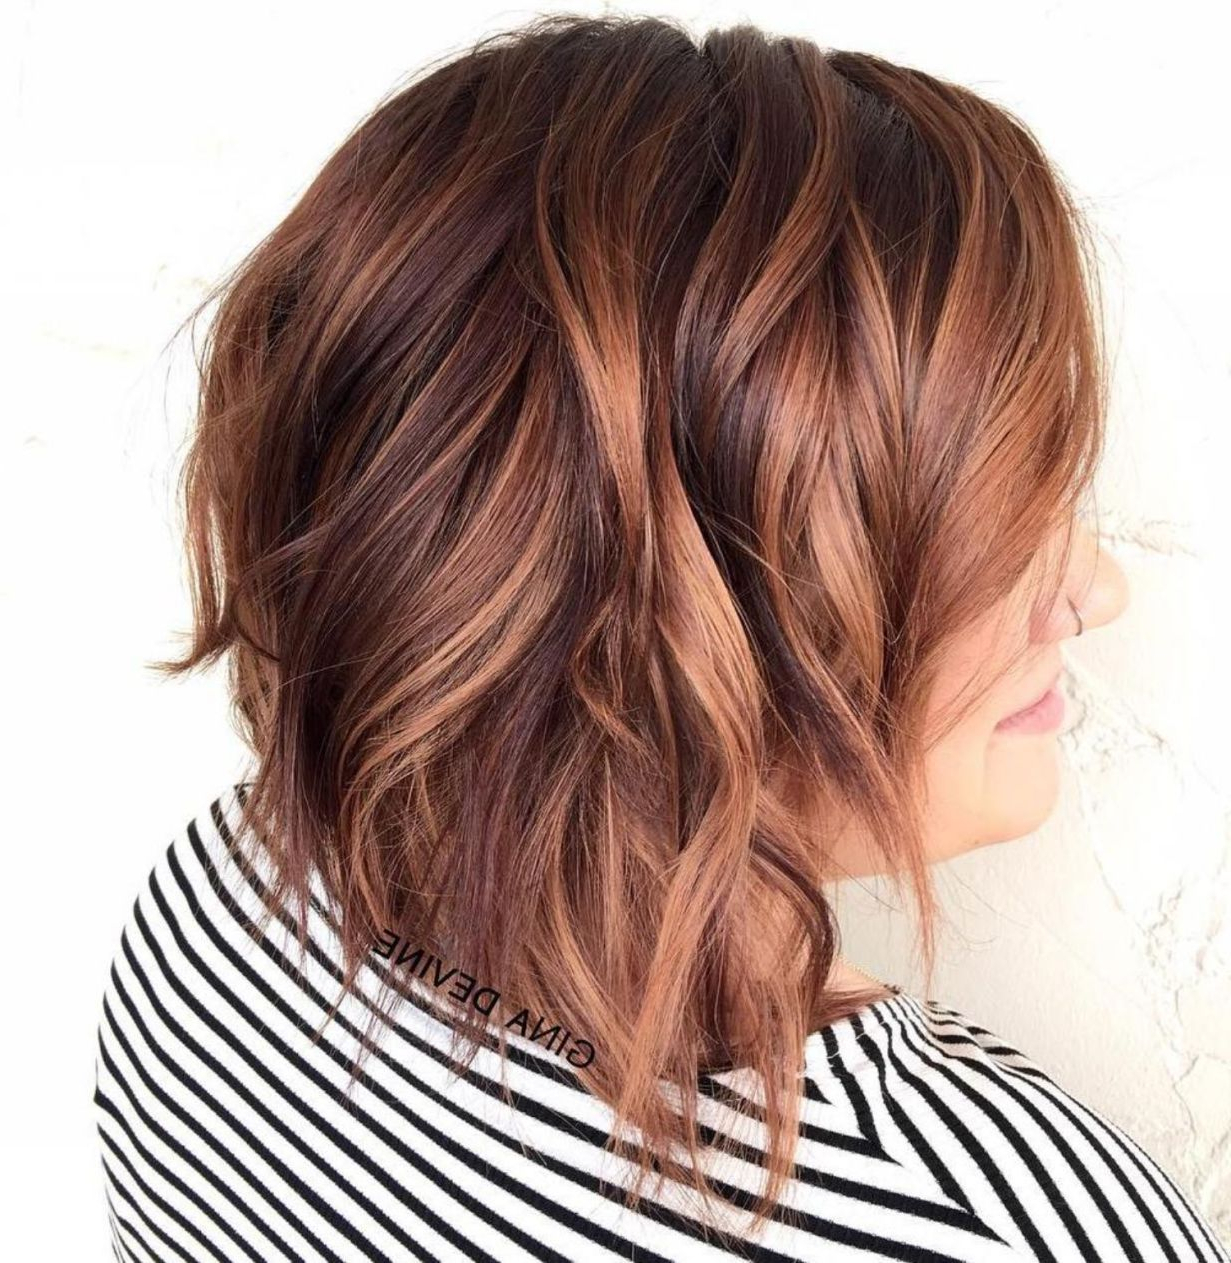 Color Highlights | Frizure | Short Hair Styles For Round With Regard To Color Highlights Short Hairstyles For Round Face Types (View 14 of 20)